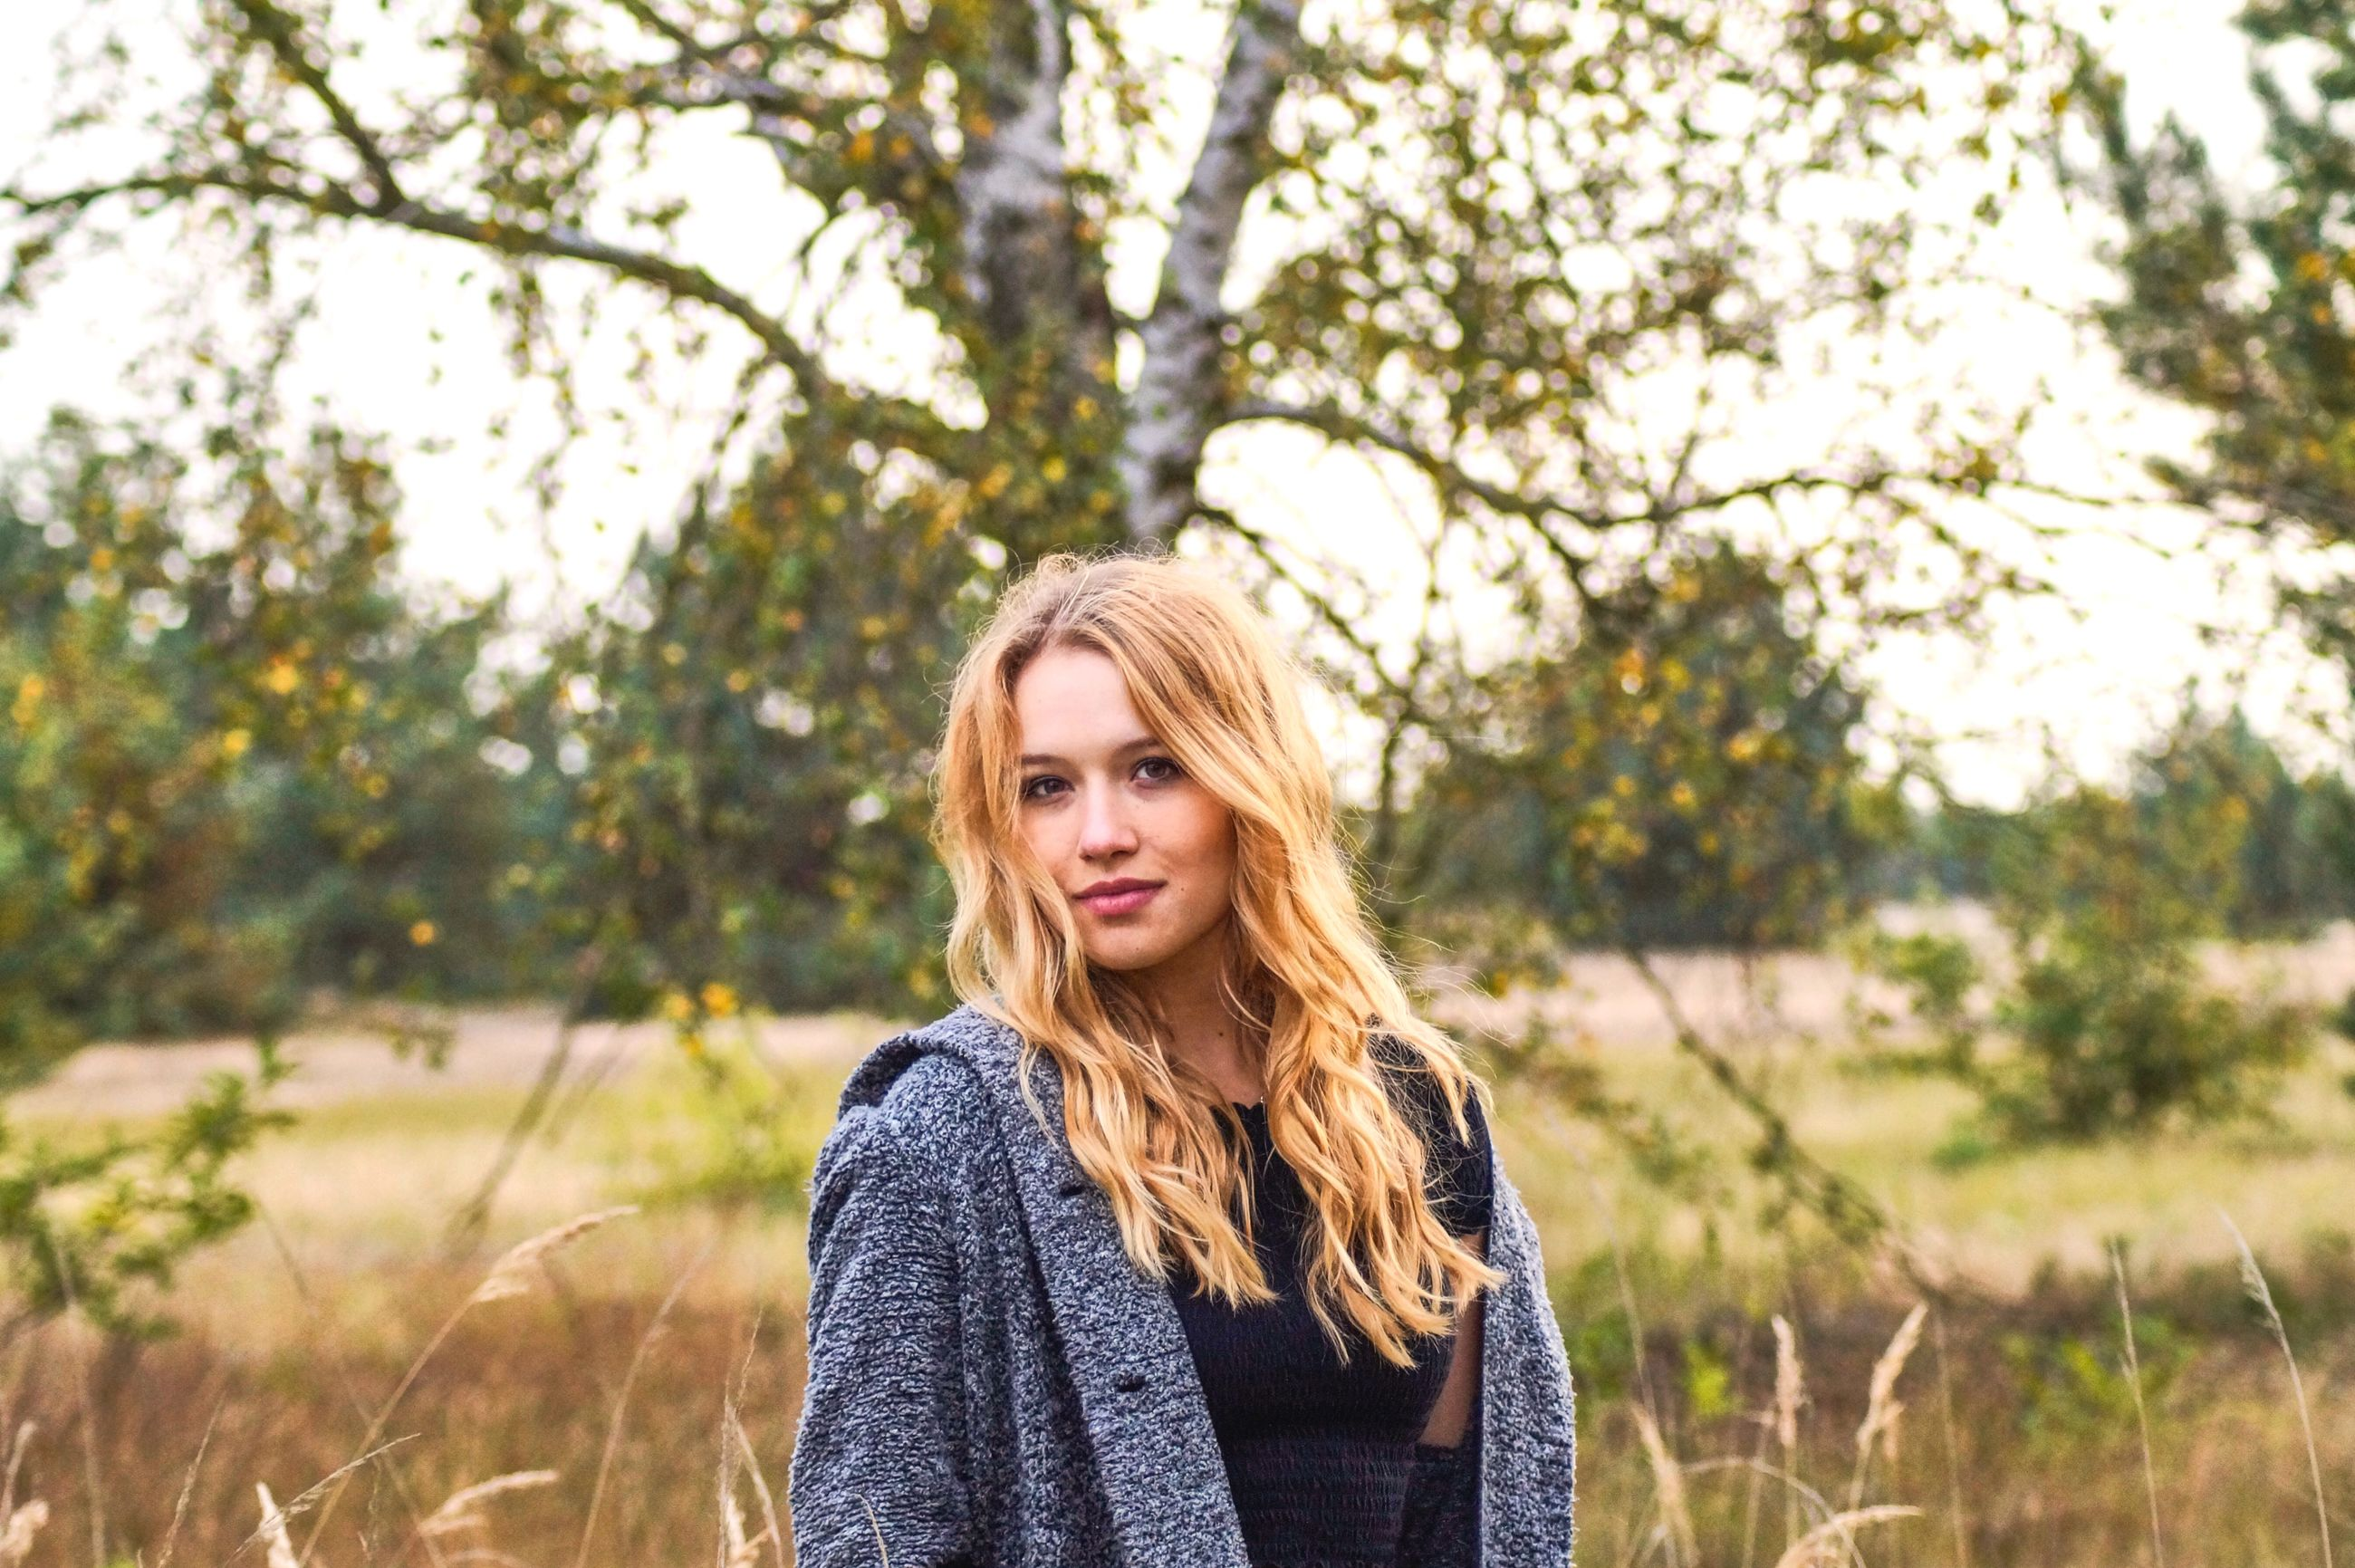 hair, portrait, long hair, young adult, tree, one person, hairstyle, blond hair, young women, plant, beautiful woman, looking at camera, real people, beauty, lifestyles, standing, women, day, focus on foreground, outdoors, teenager